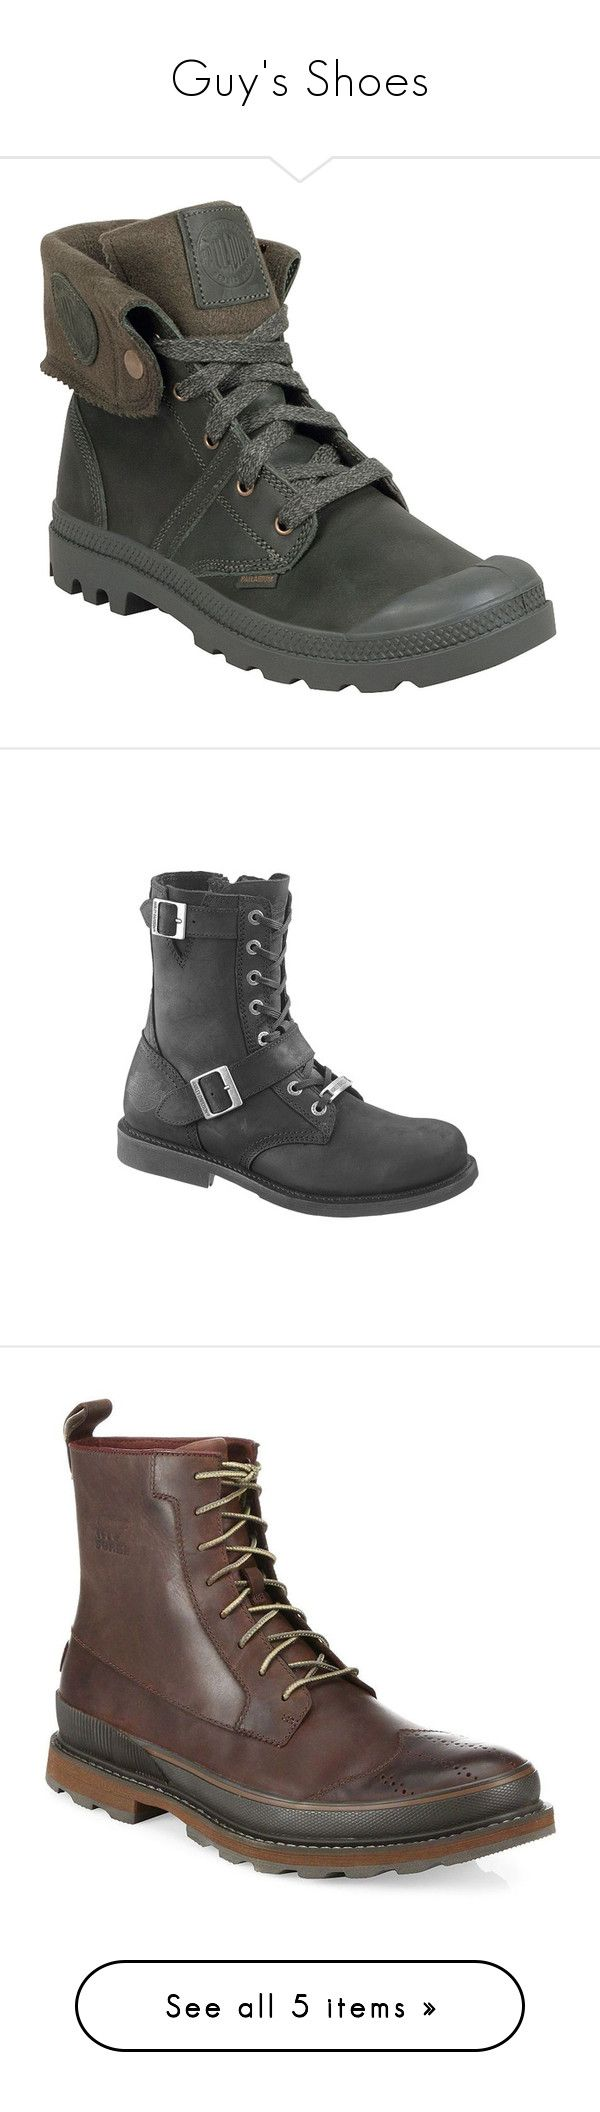 """Guy's Shoes"" by persephone-tbf ❤ liked on Polyvore featuring men's fashion, men's shoes, men's boots, men's work boots, green, mens combat boots, mens lace up boots, palladium mens boots, mens army boots and men's fold over combat boots"